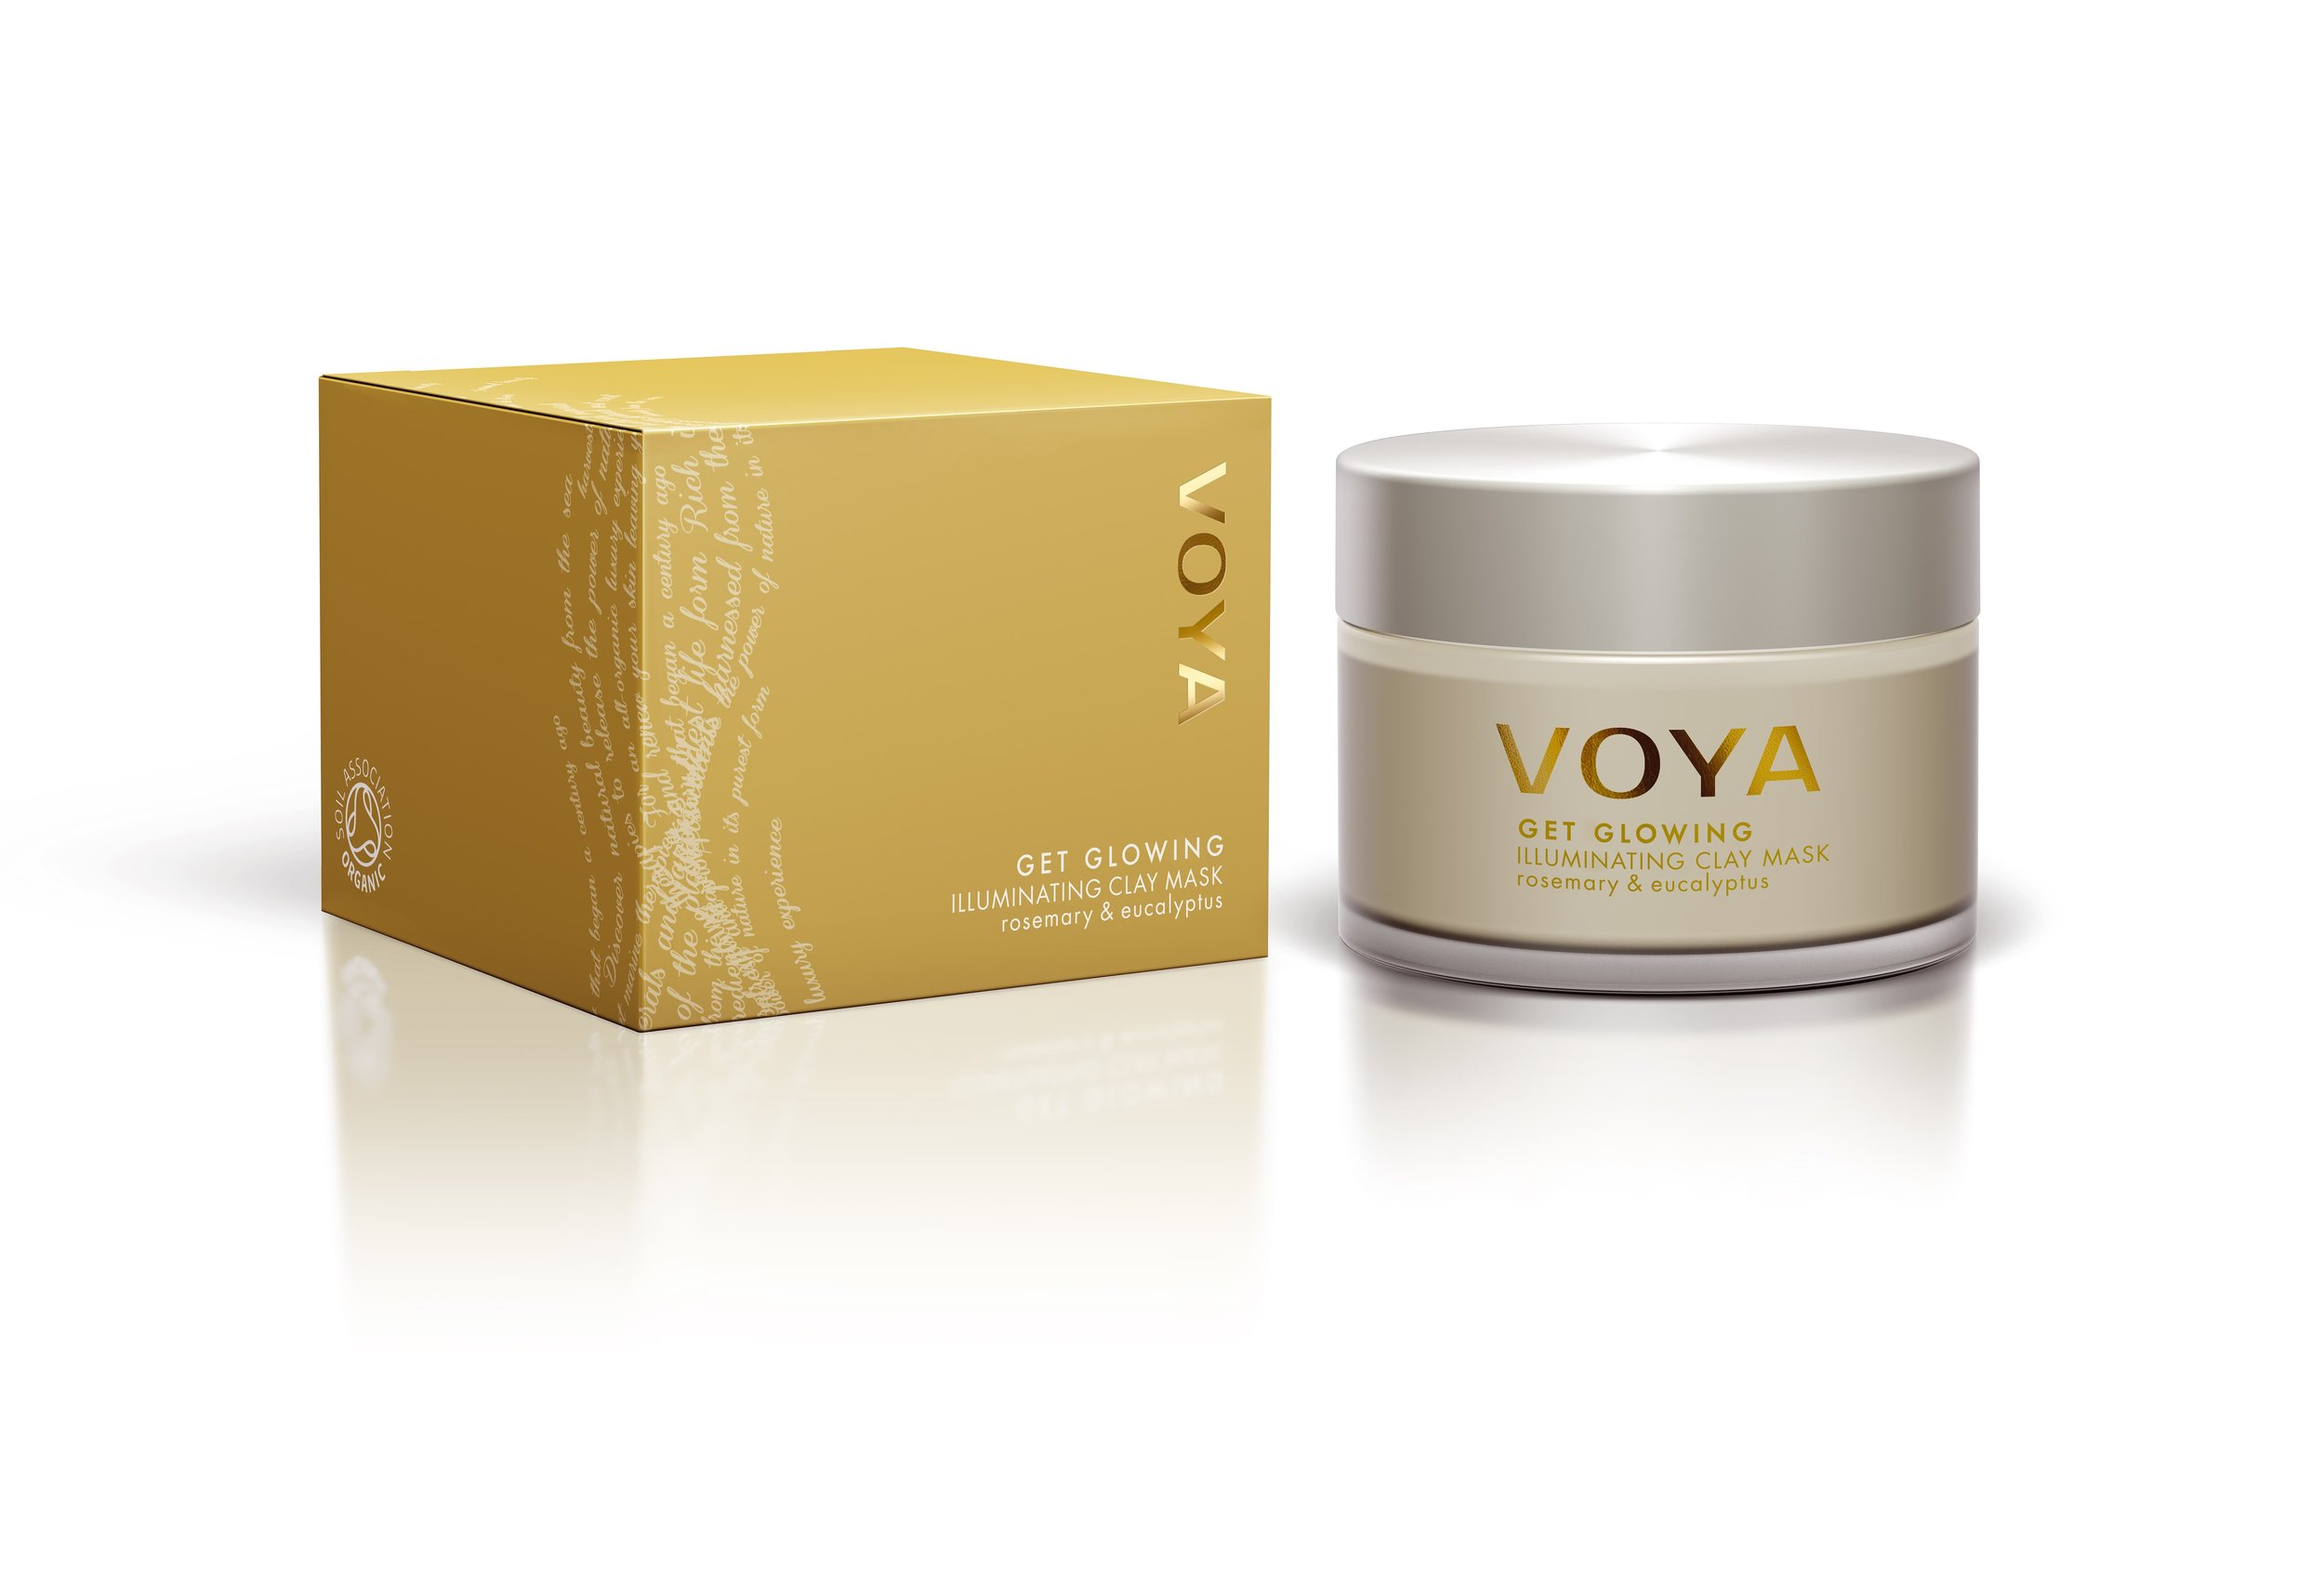 VOYA Get Glowing Illuminating Clay Mask